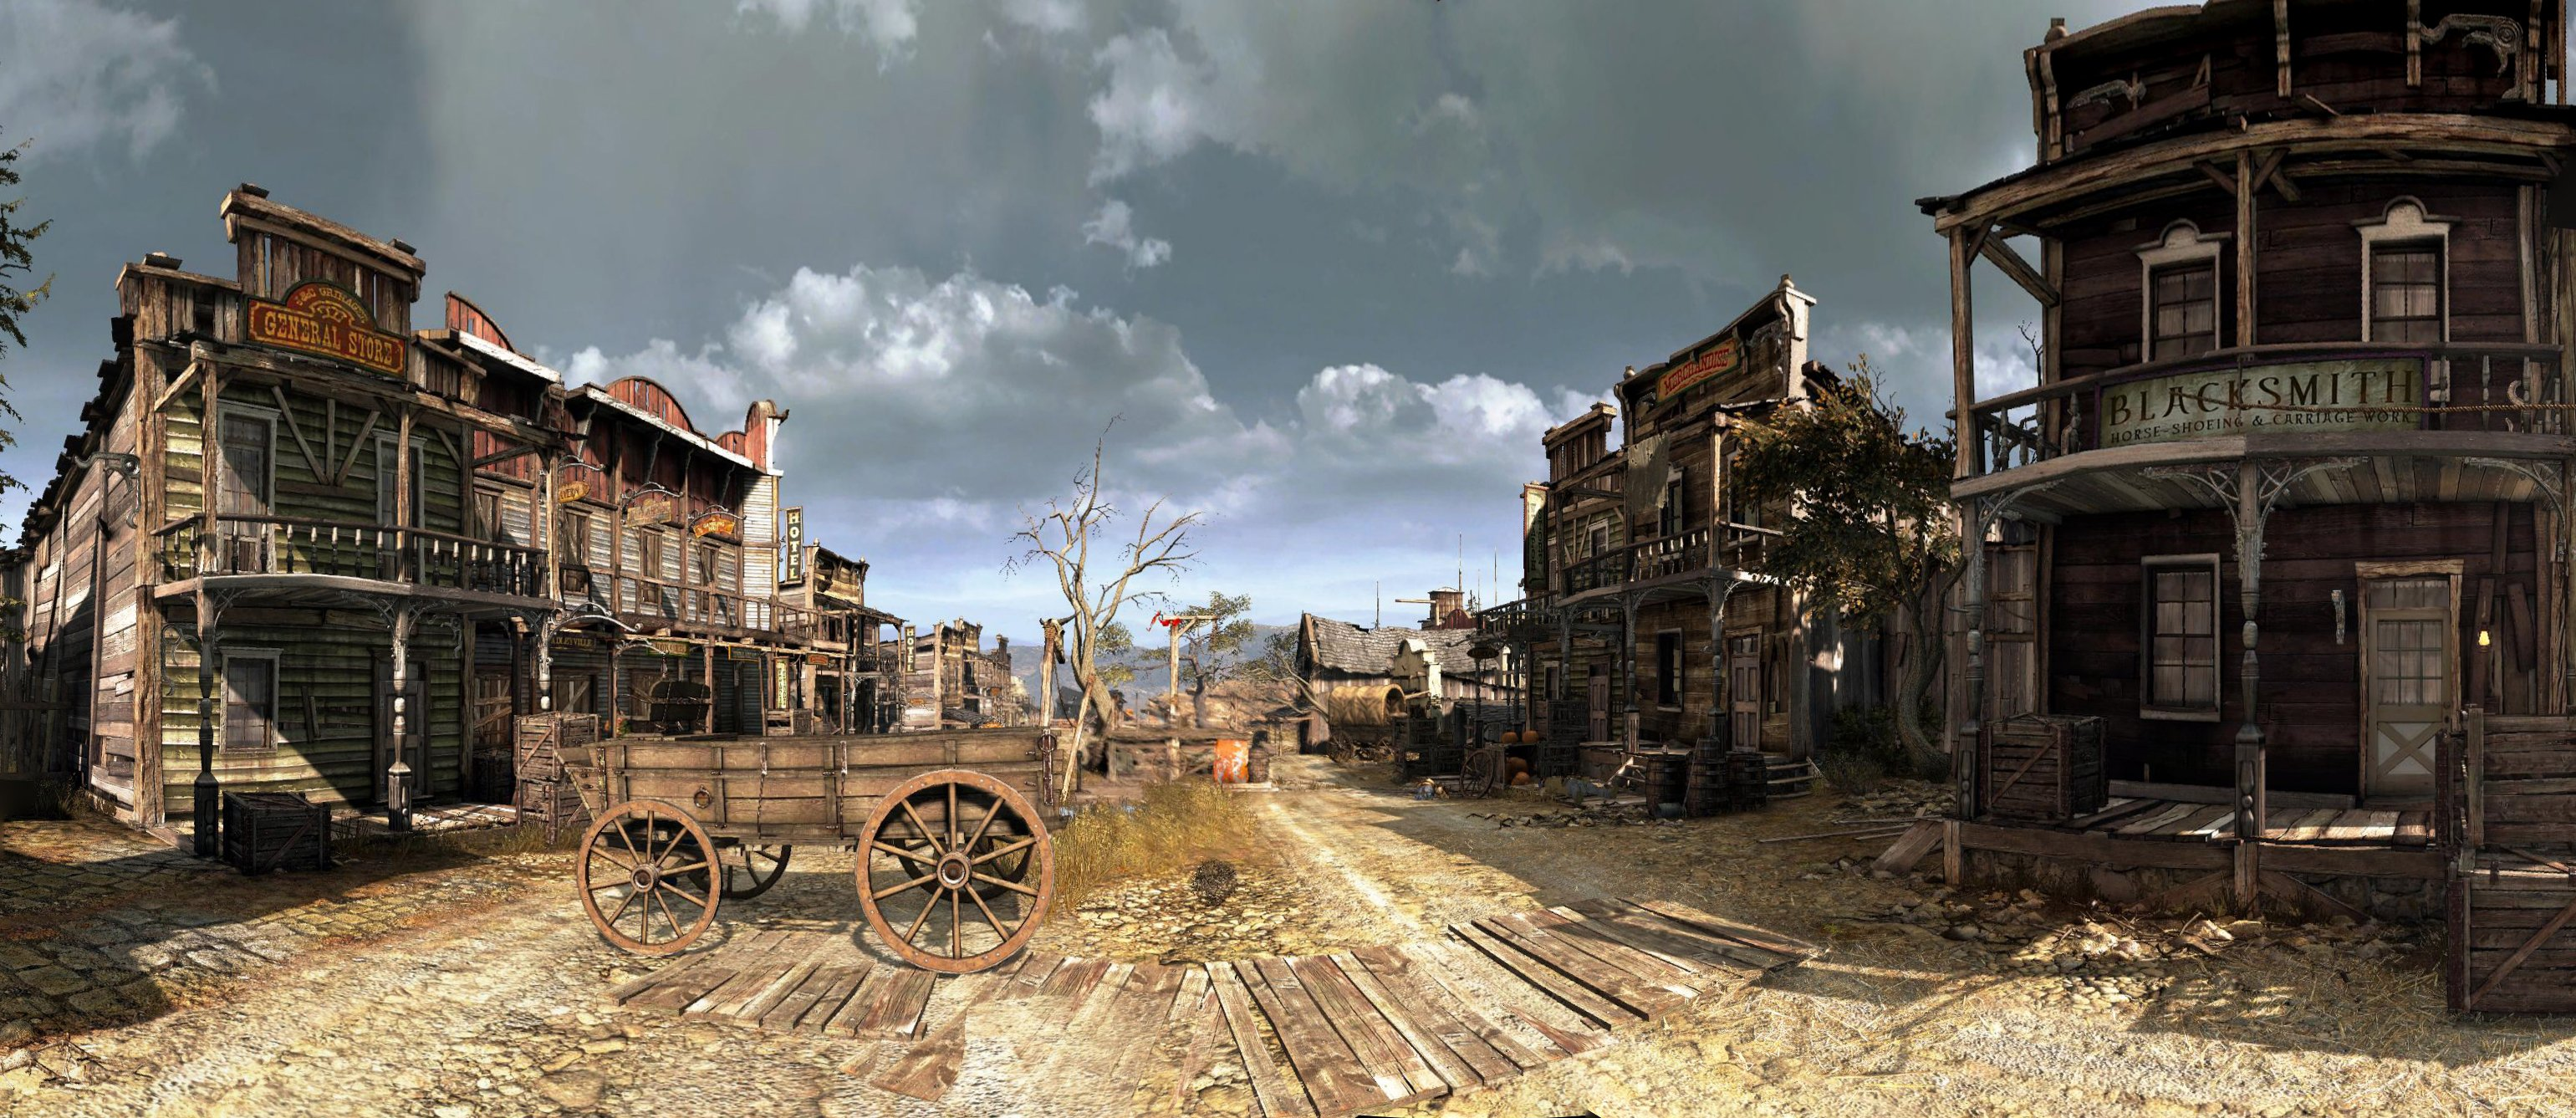 CALL OF JUAREZ action adventure western (58) wallpaper | 3081x1337 | 242270  | WallpaperUP